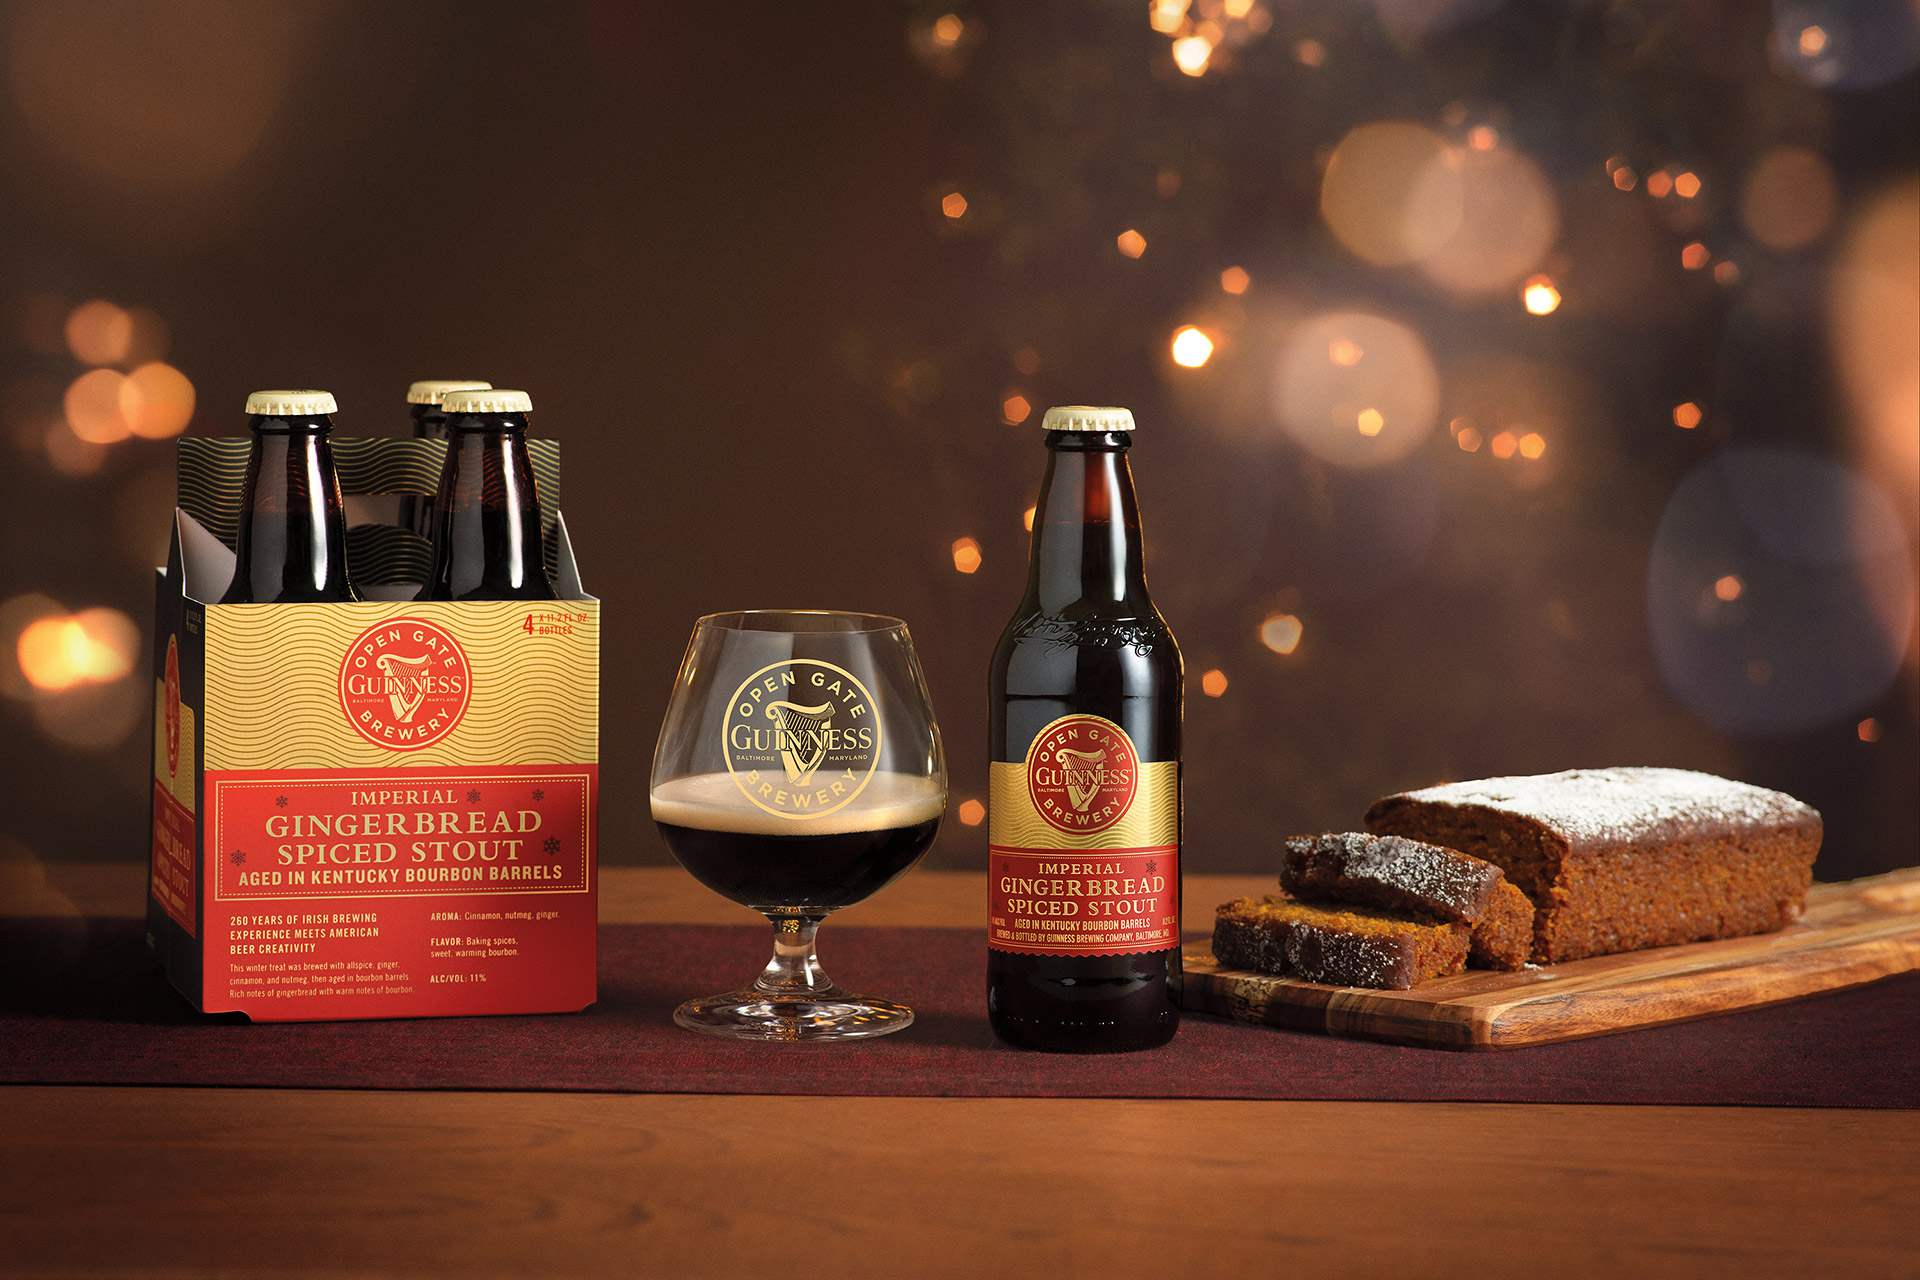 Guinness Imperial Gingerbread Spiced Stout